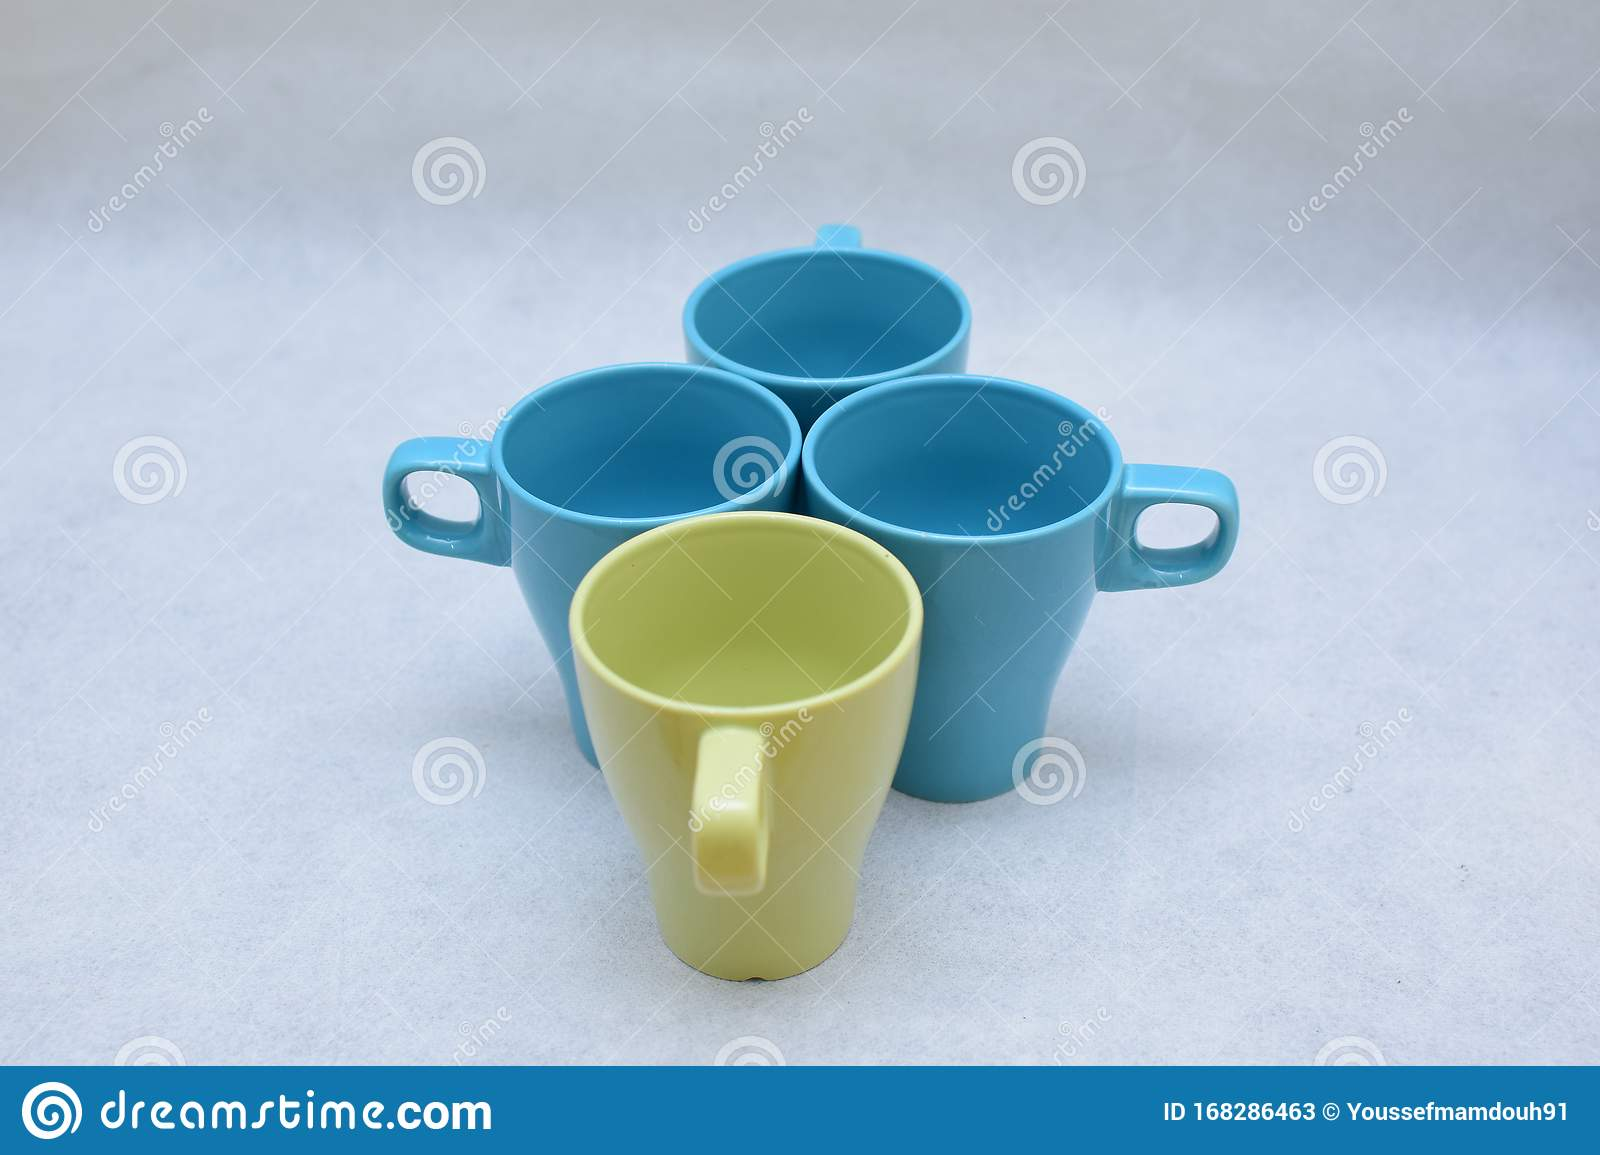 Mockup Set Of Colorful Tea Or Coffee Ceramic Mug Template For Branding Identity And Company Logo Design Drink Ware Dining Stock Image Image Of Isolated Cocktail 168286463